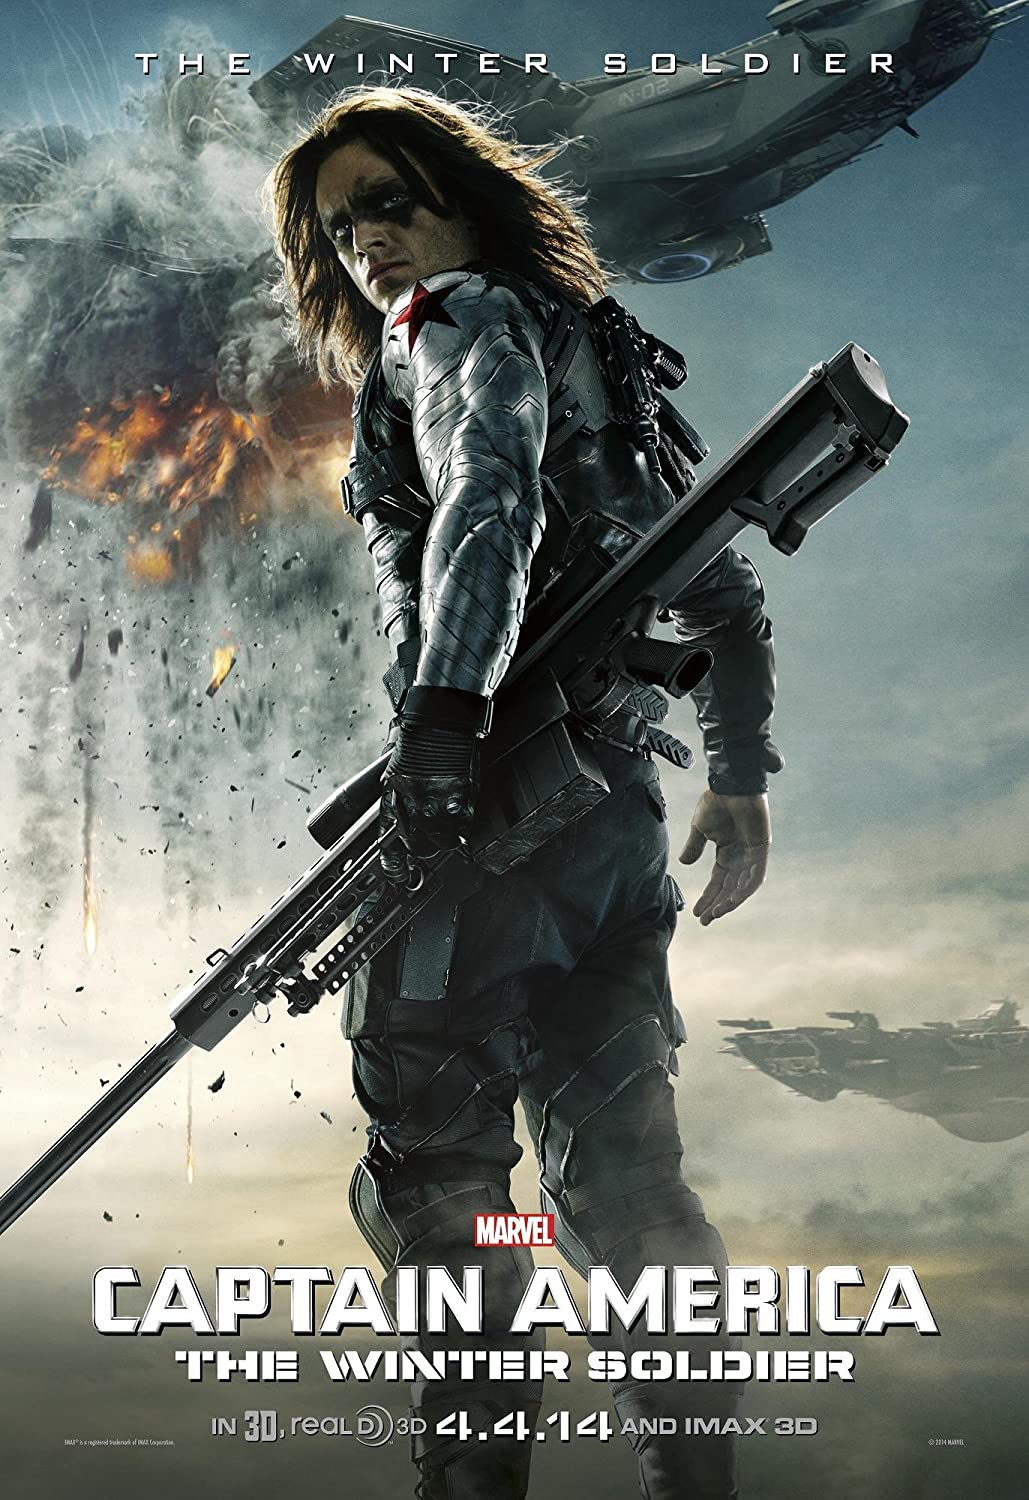 amazon com bucky captain america the winter soldier 2014 movie poster thick poster original size 16 x 24 inches chris evans frank grillo sebastian stan posters prints bucky captain america the winter soldier 2014 movie poster thick poster original size 16 x 24 inches chris evans frank grillo sebastian